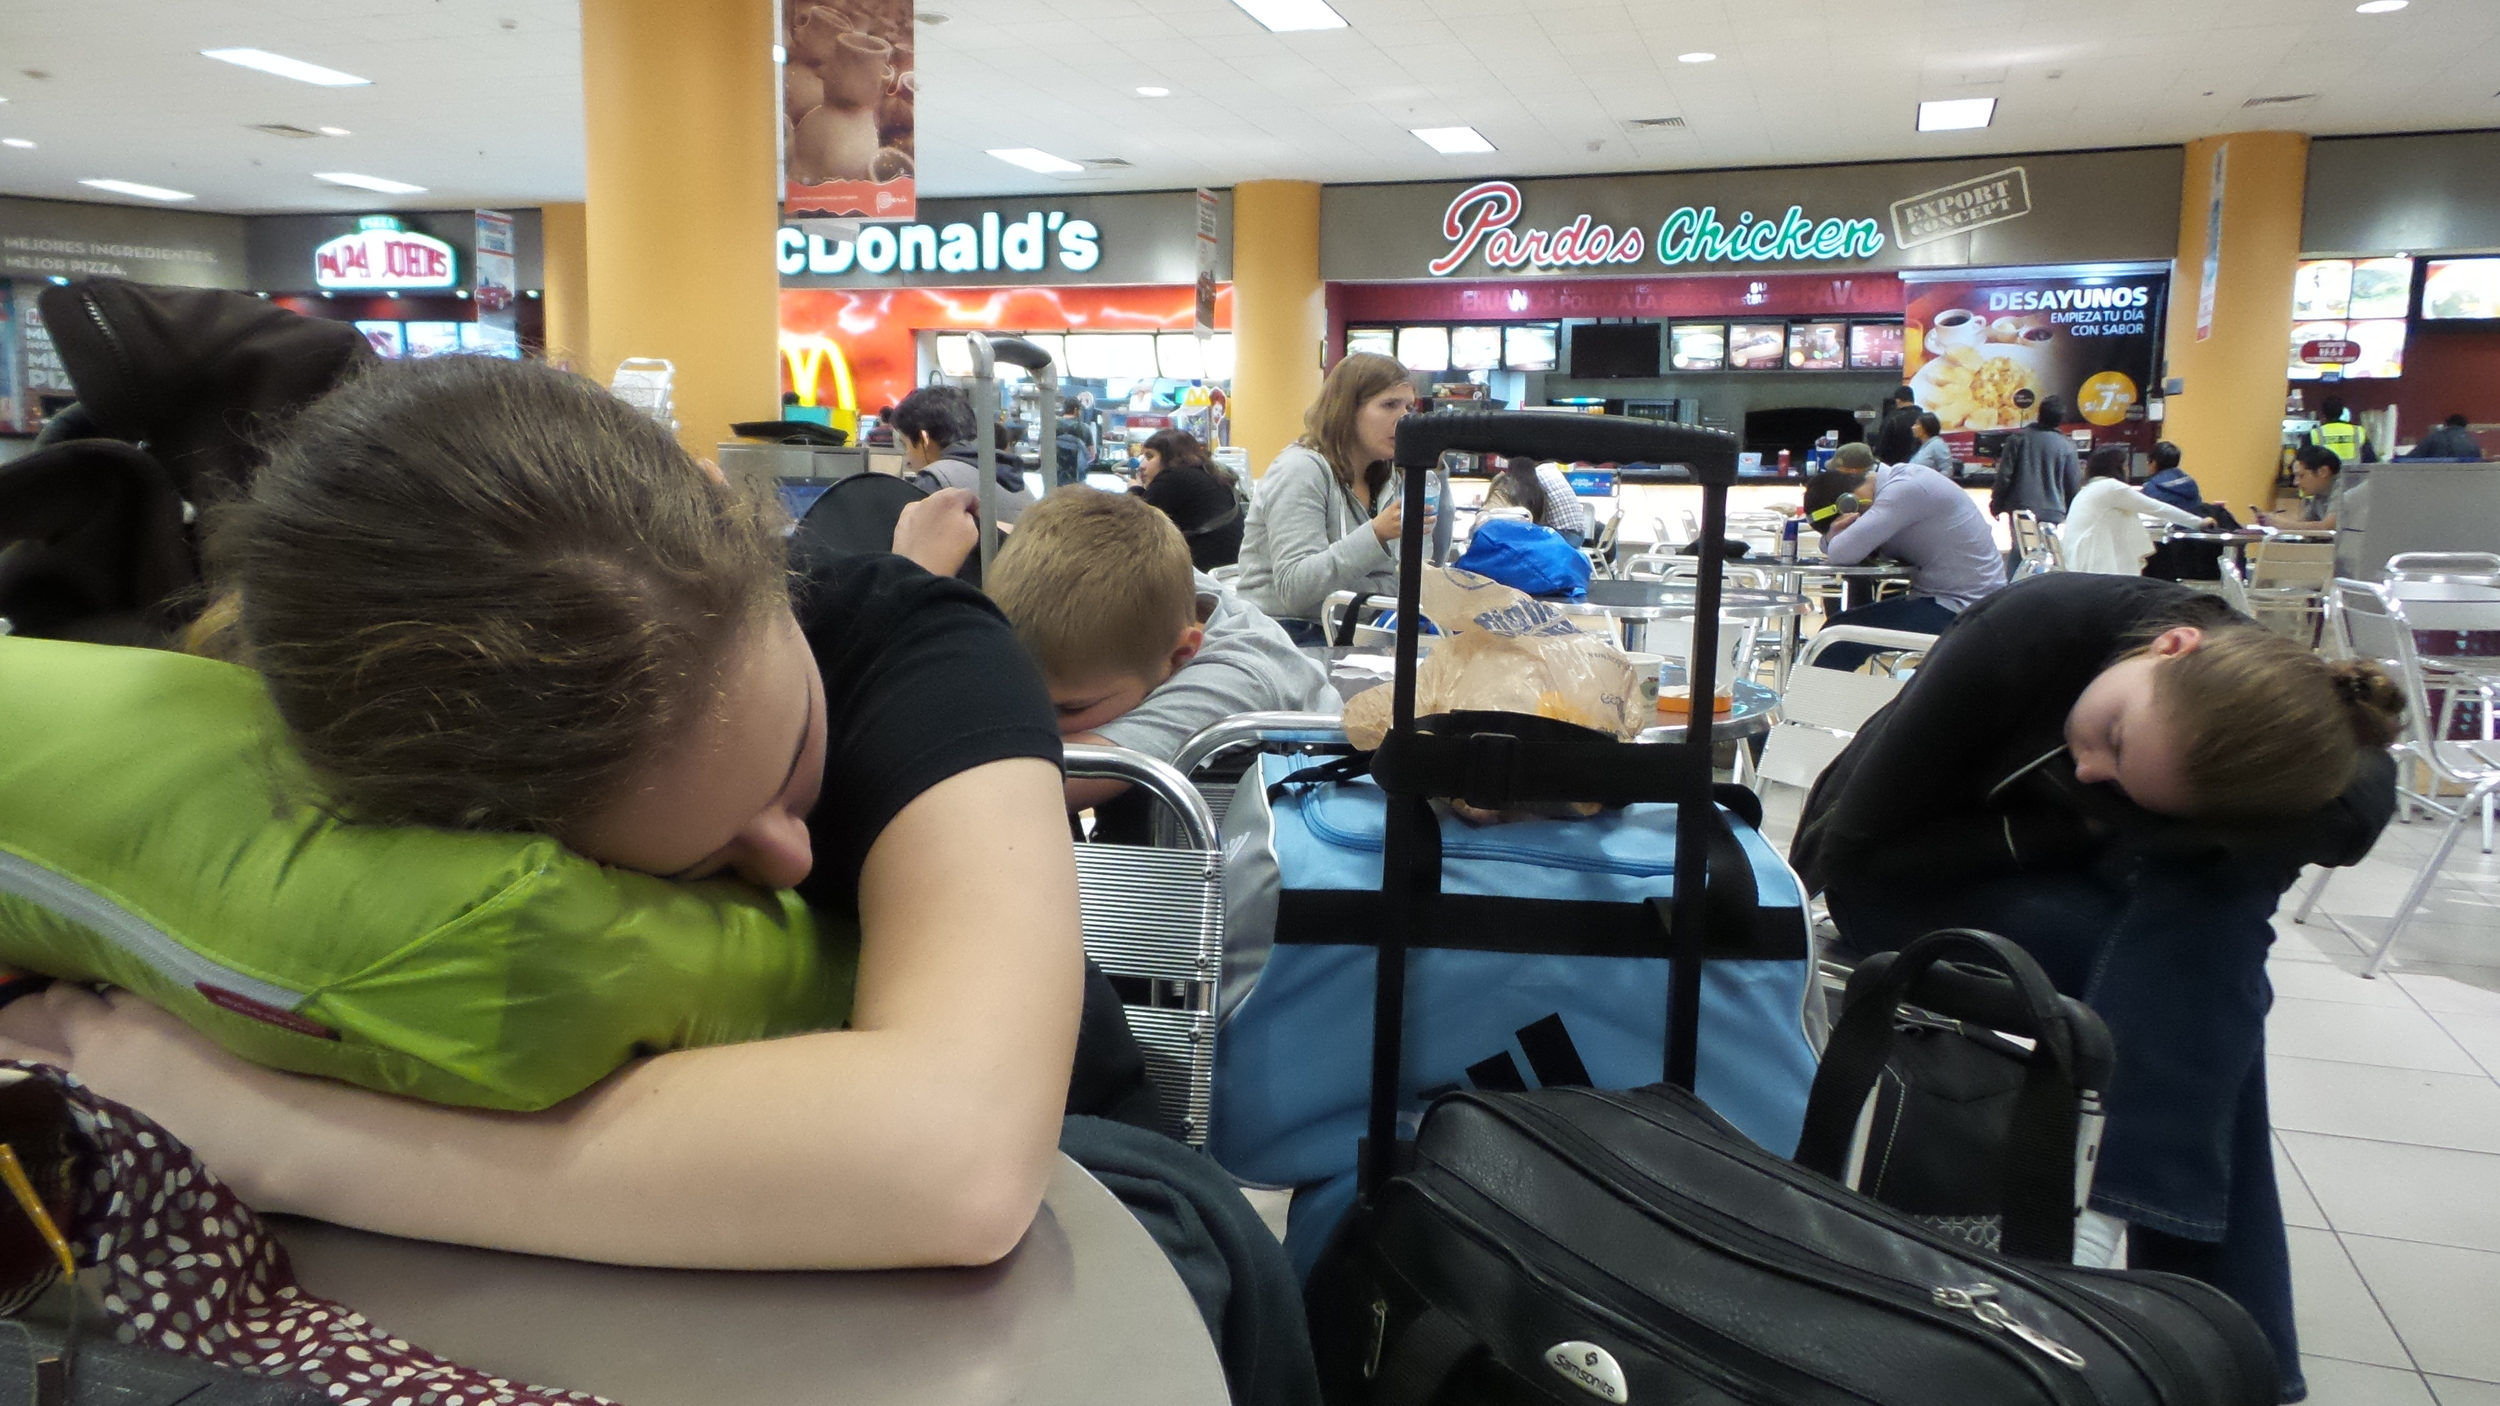 Out cold awaiting our next flight in Lima, Peru